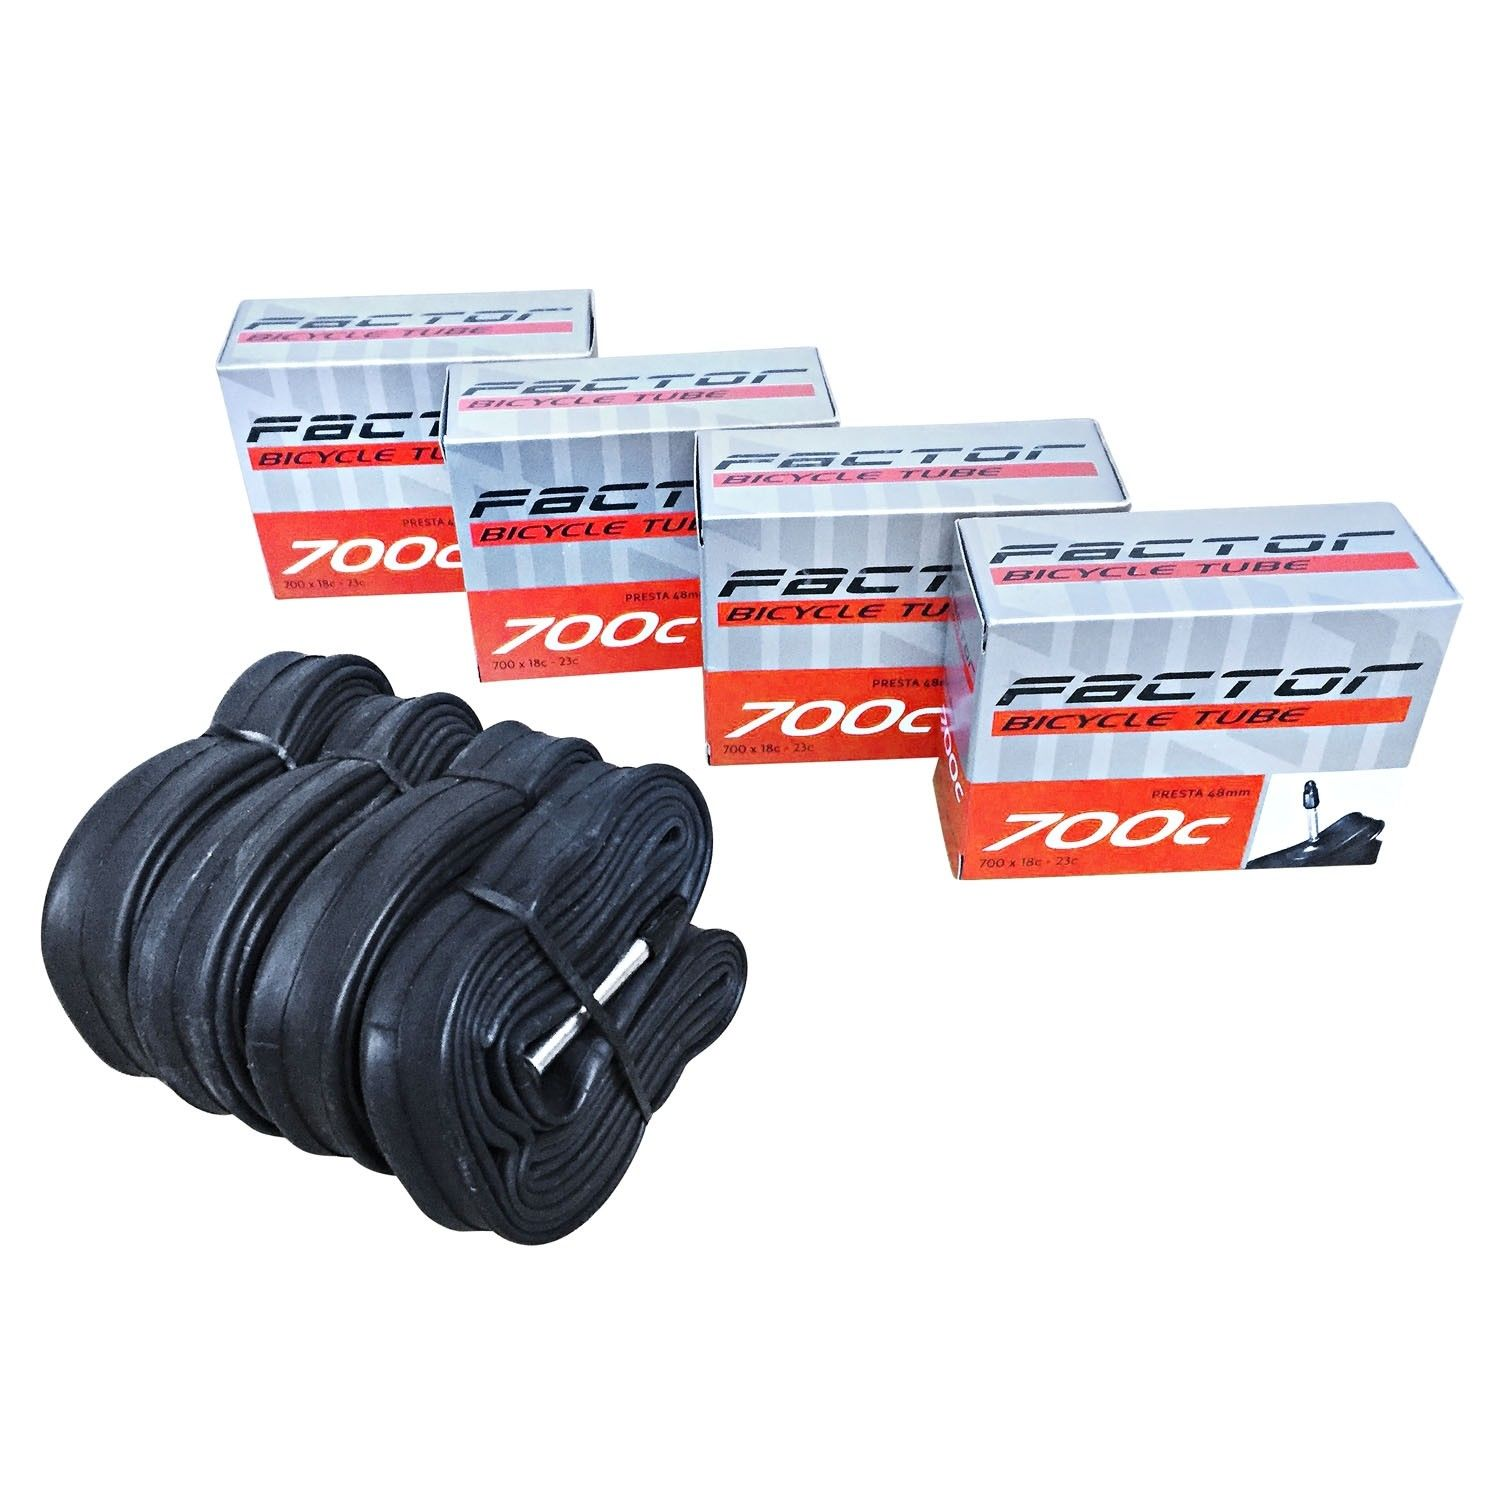 6 Pack 700 X 18-25C 6X Road Racing Hybrid Bike Presta Inner Tubes